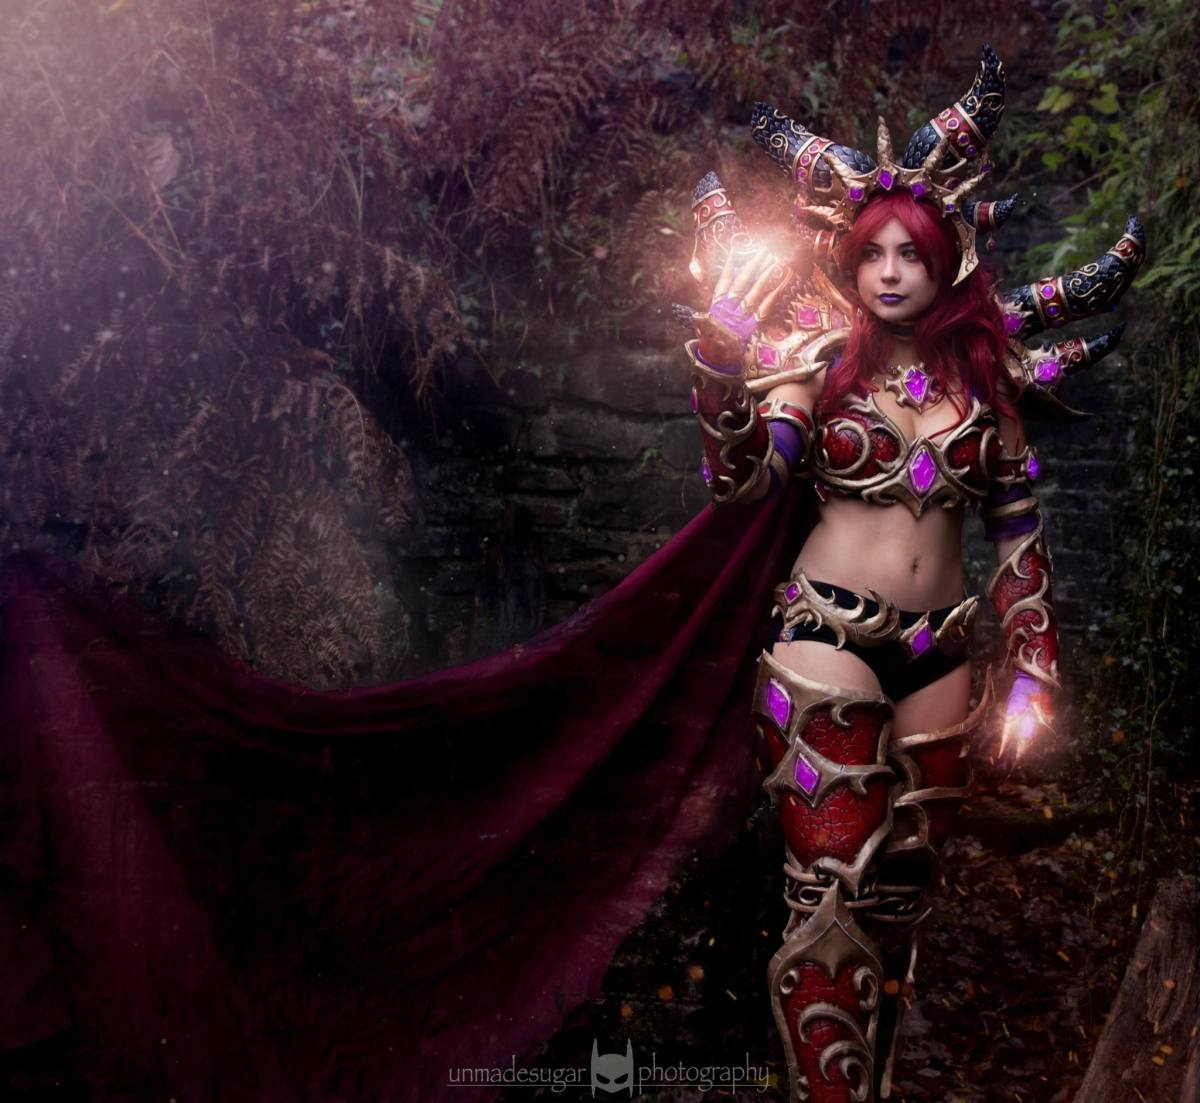 The Art of Cosplay